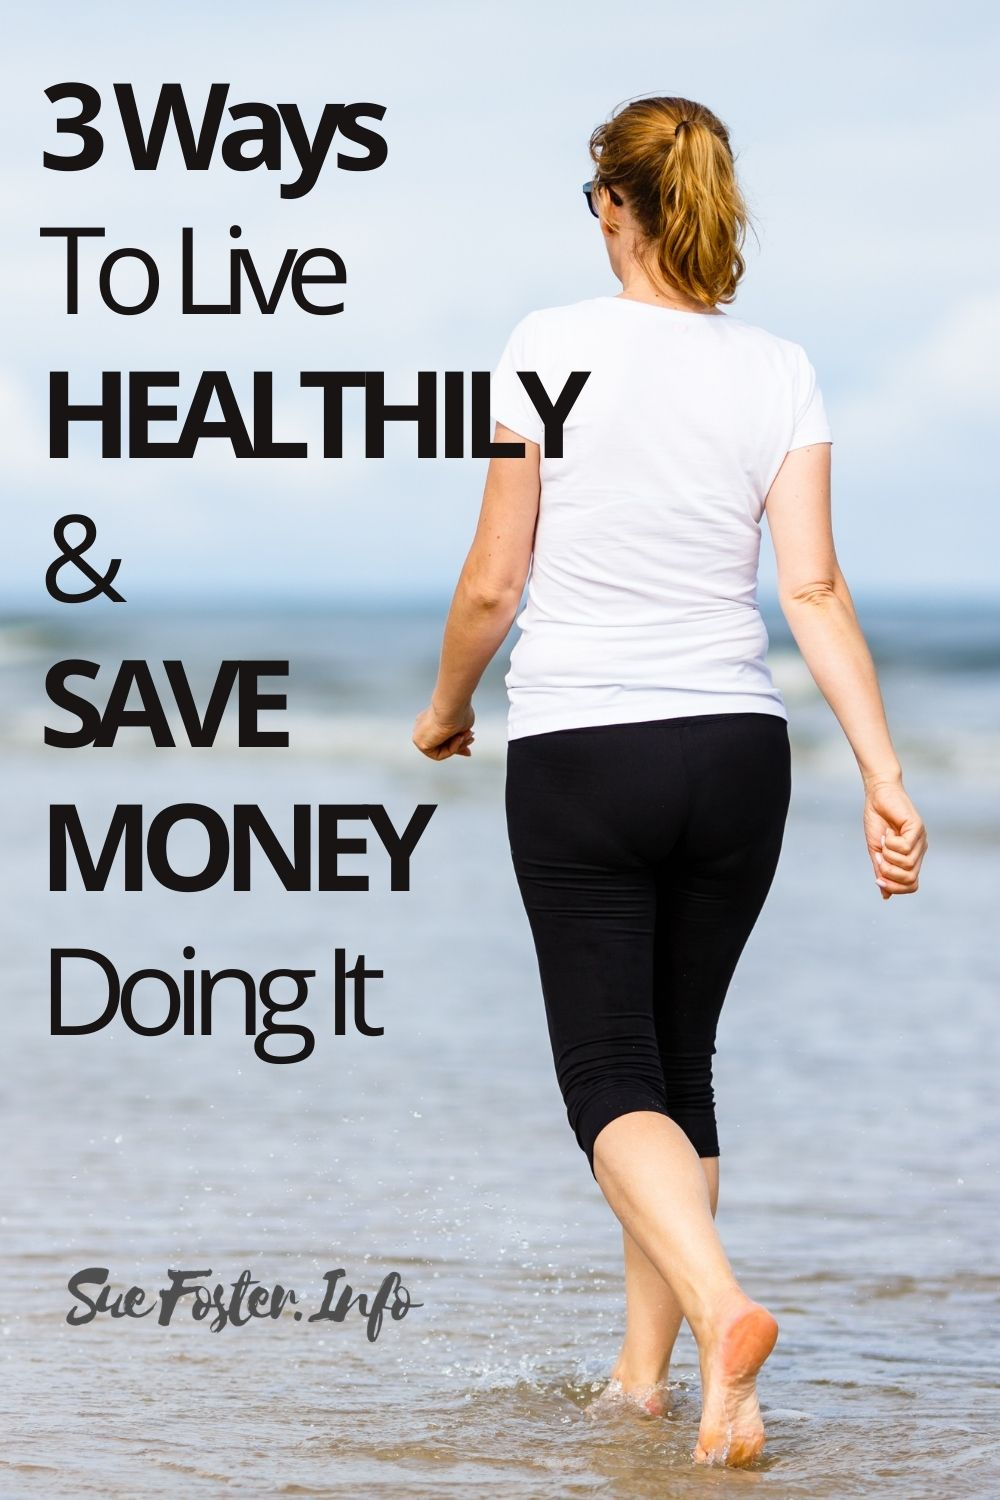 3 Ways To Live Healthily And Save Money Doing It